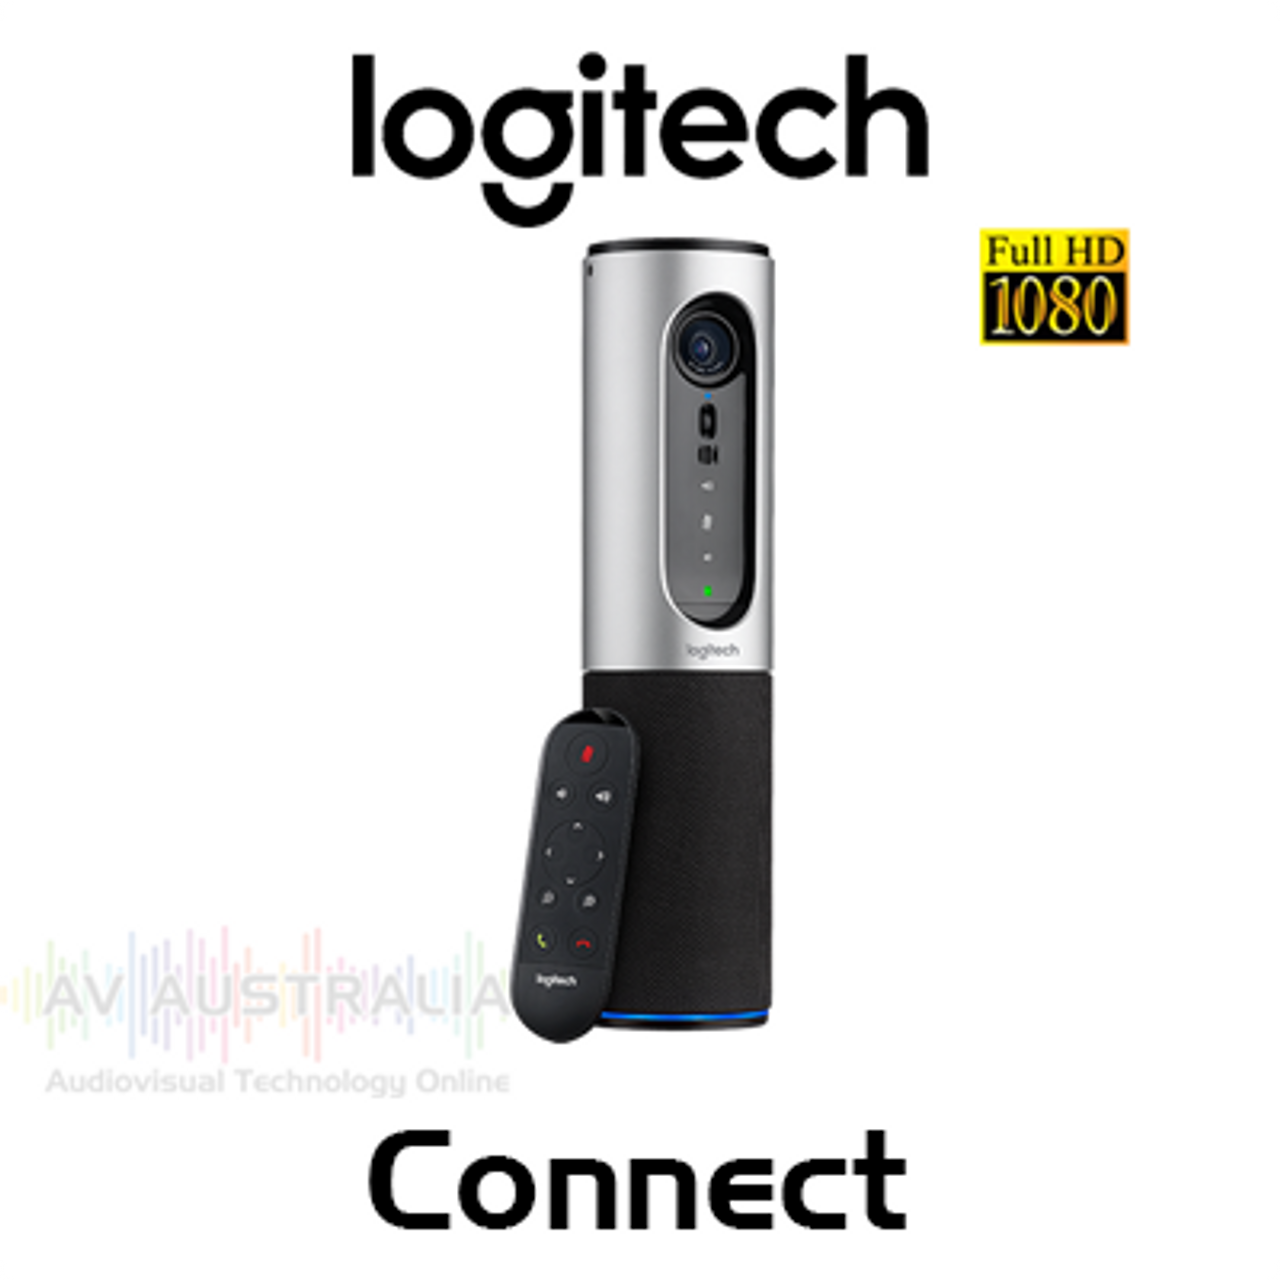 Logitech Connect Full HD Portable Video Conferencing Camera